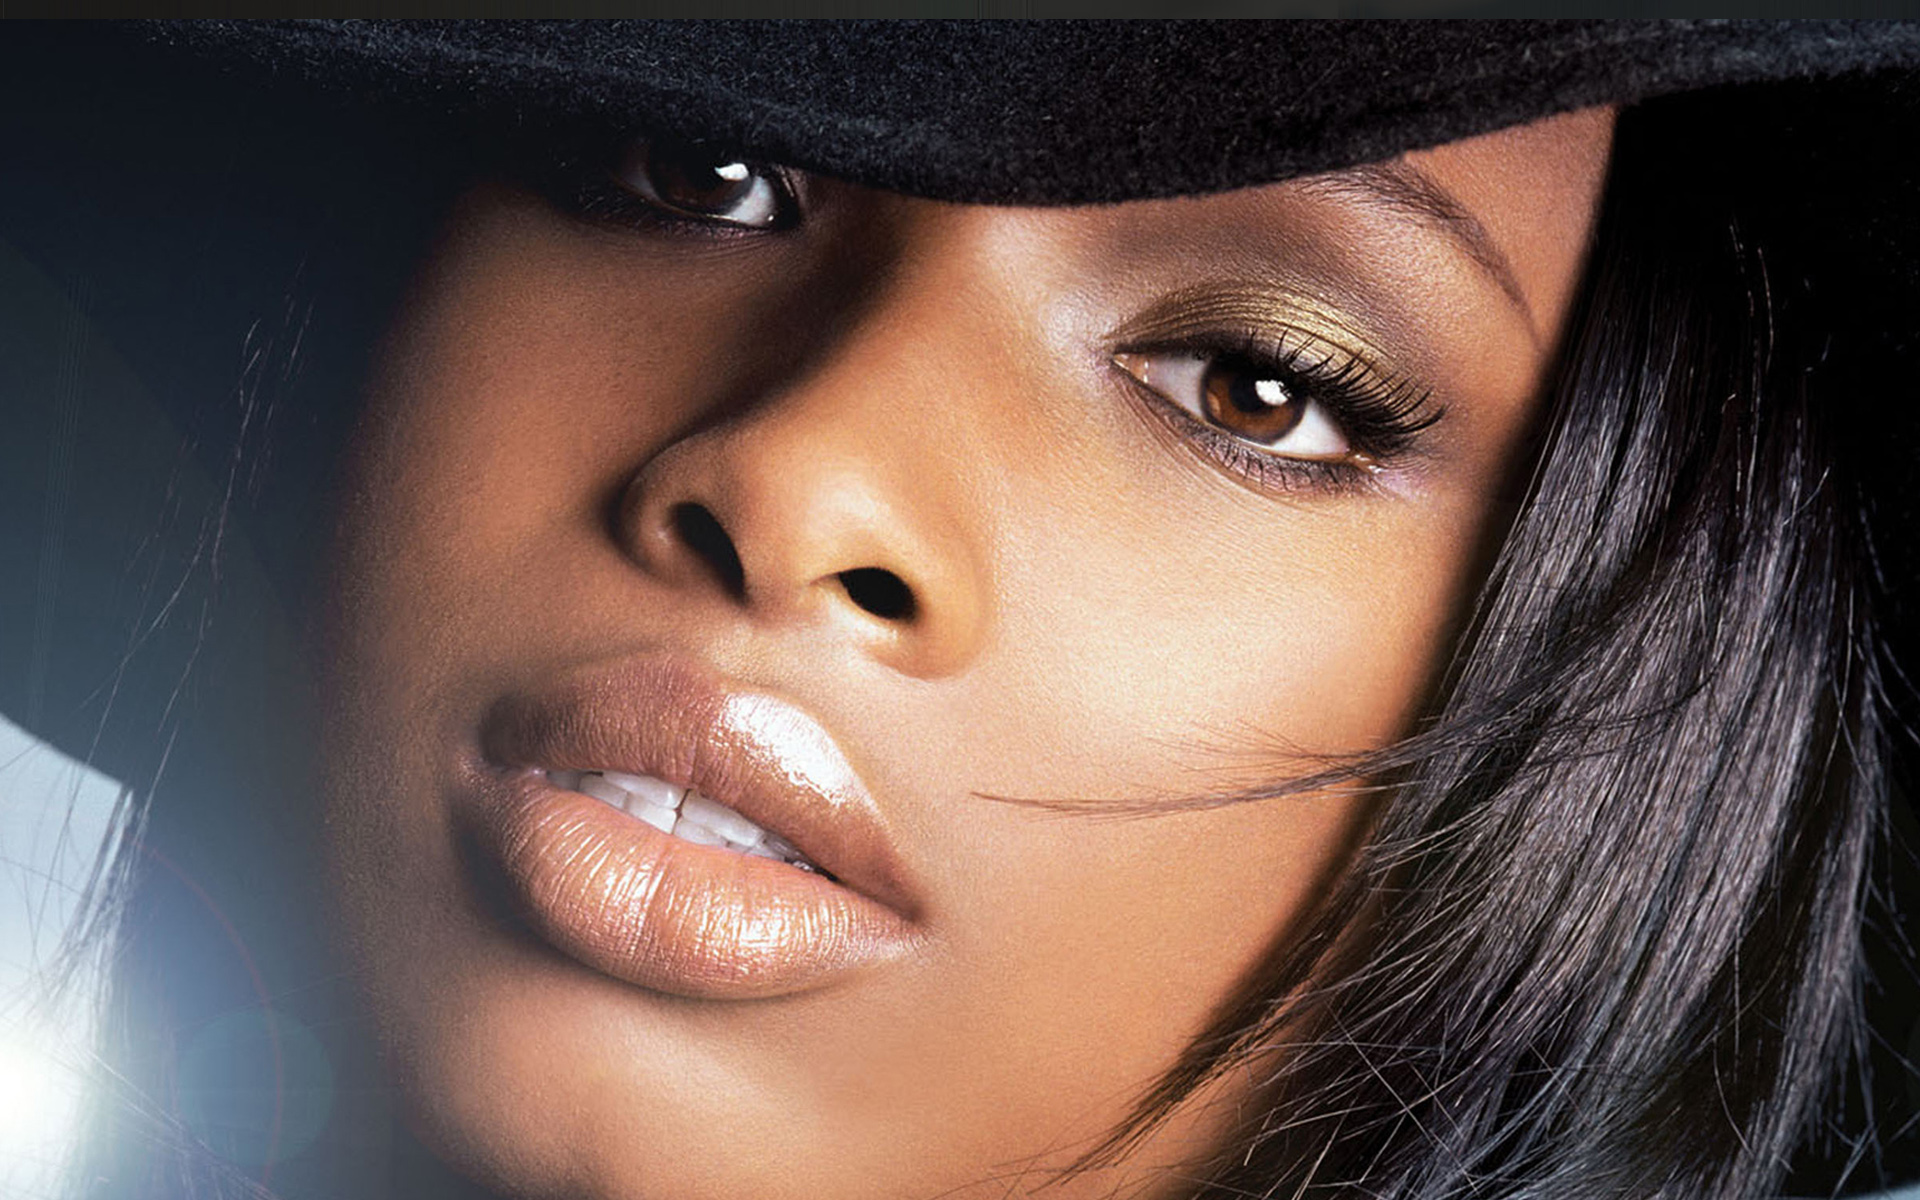 Jennifer Hudson closeup wallpaper – 1920 x 1200 pixels – 763 kB